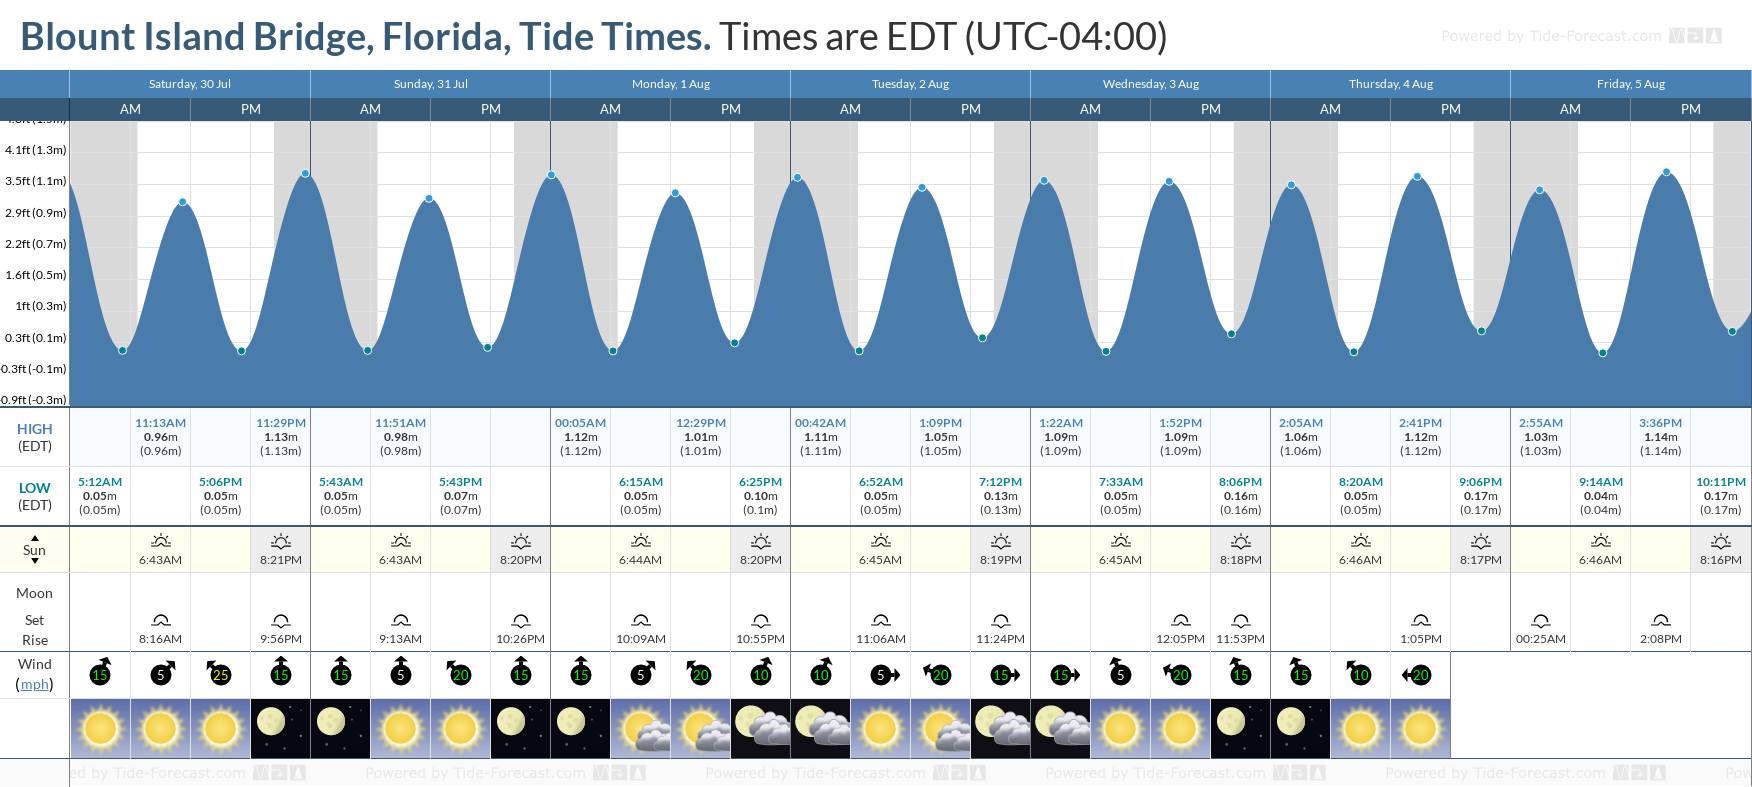 Blount Island Bridge, Florida Tide Chart including high and low tide tide times for the next 7 days